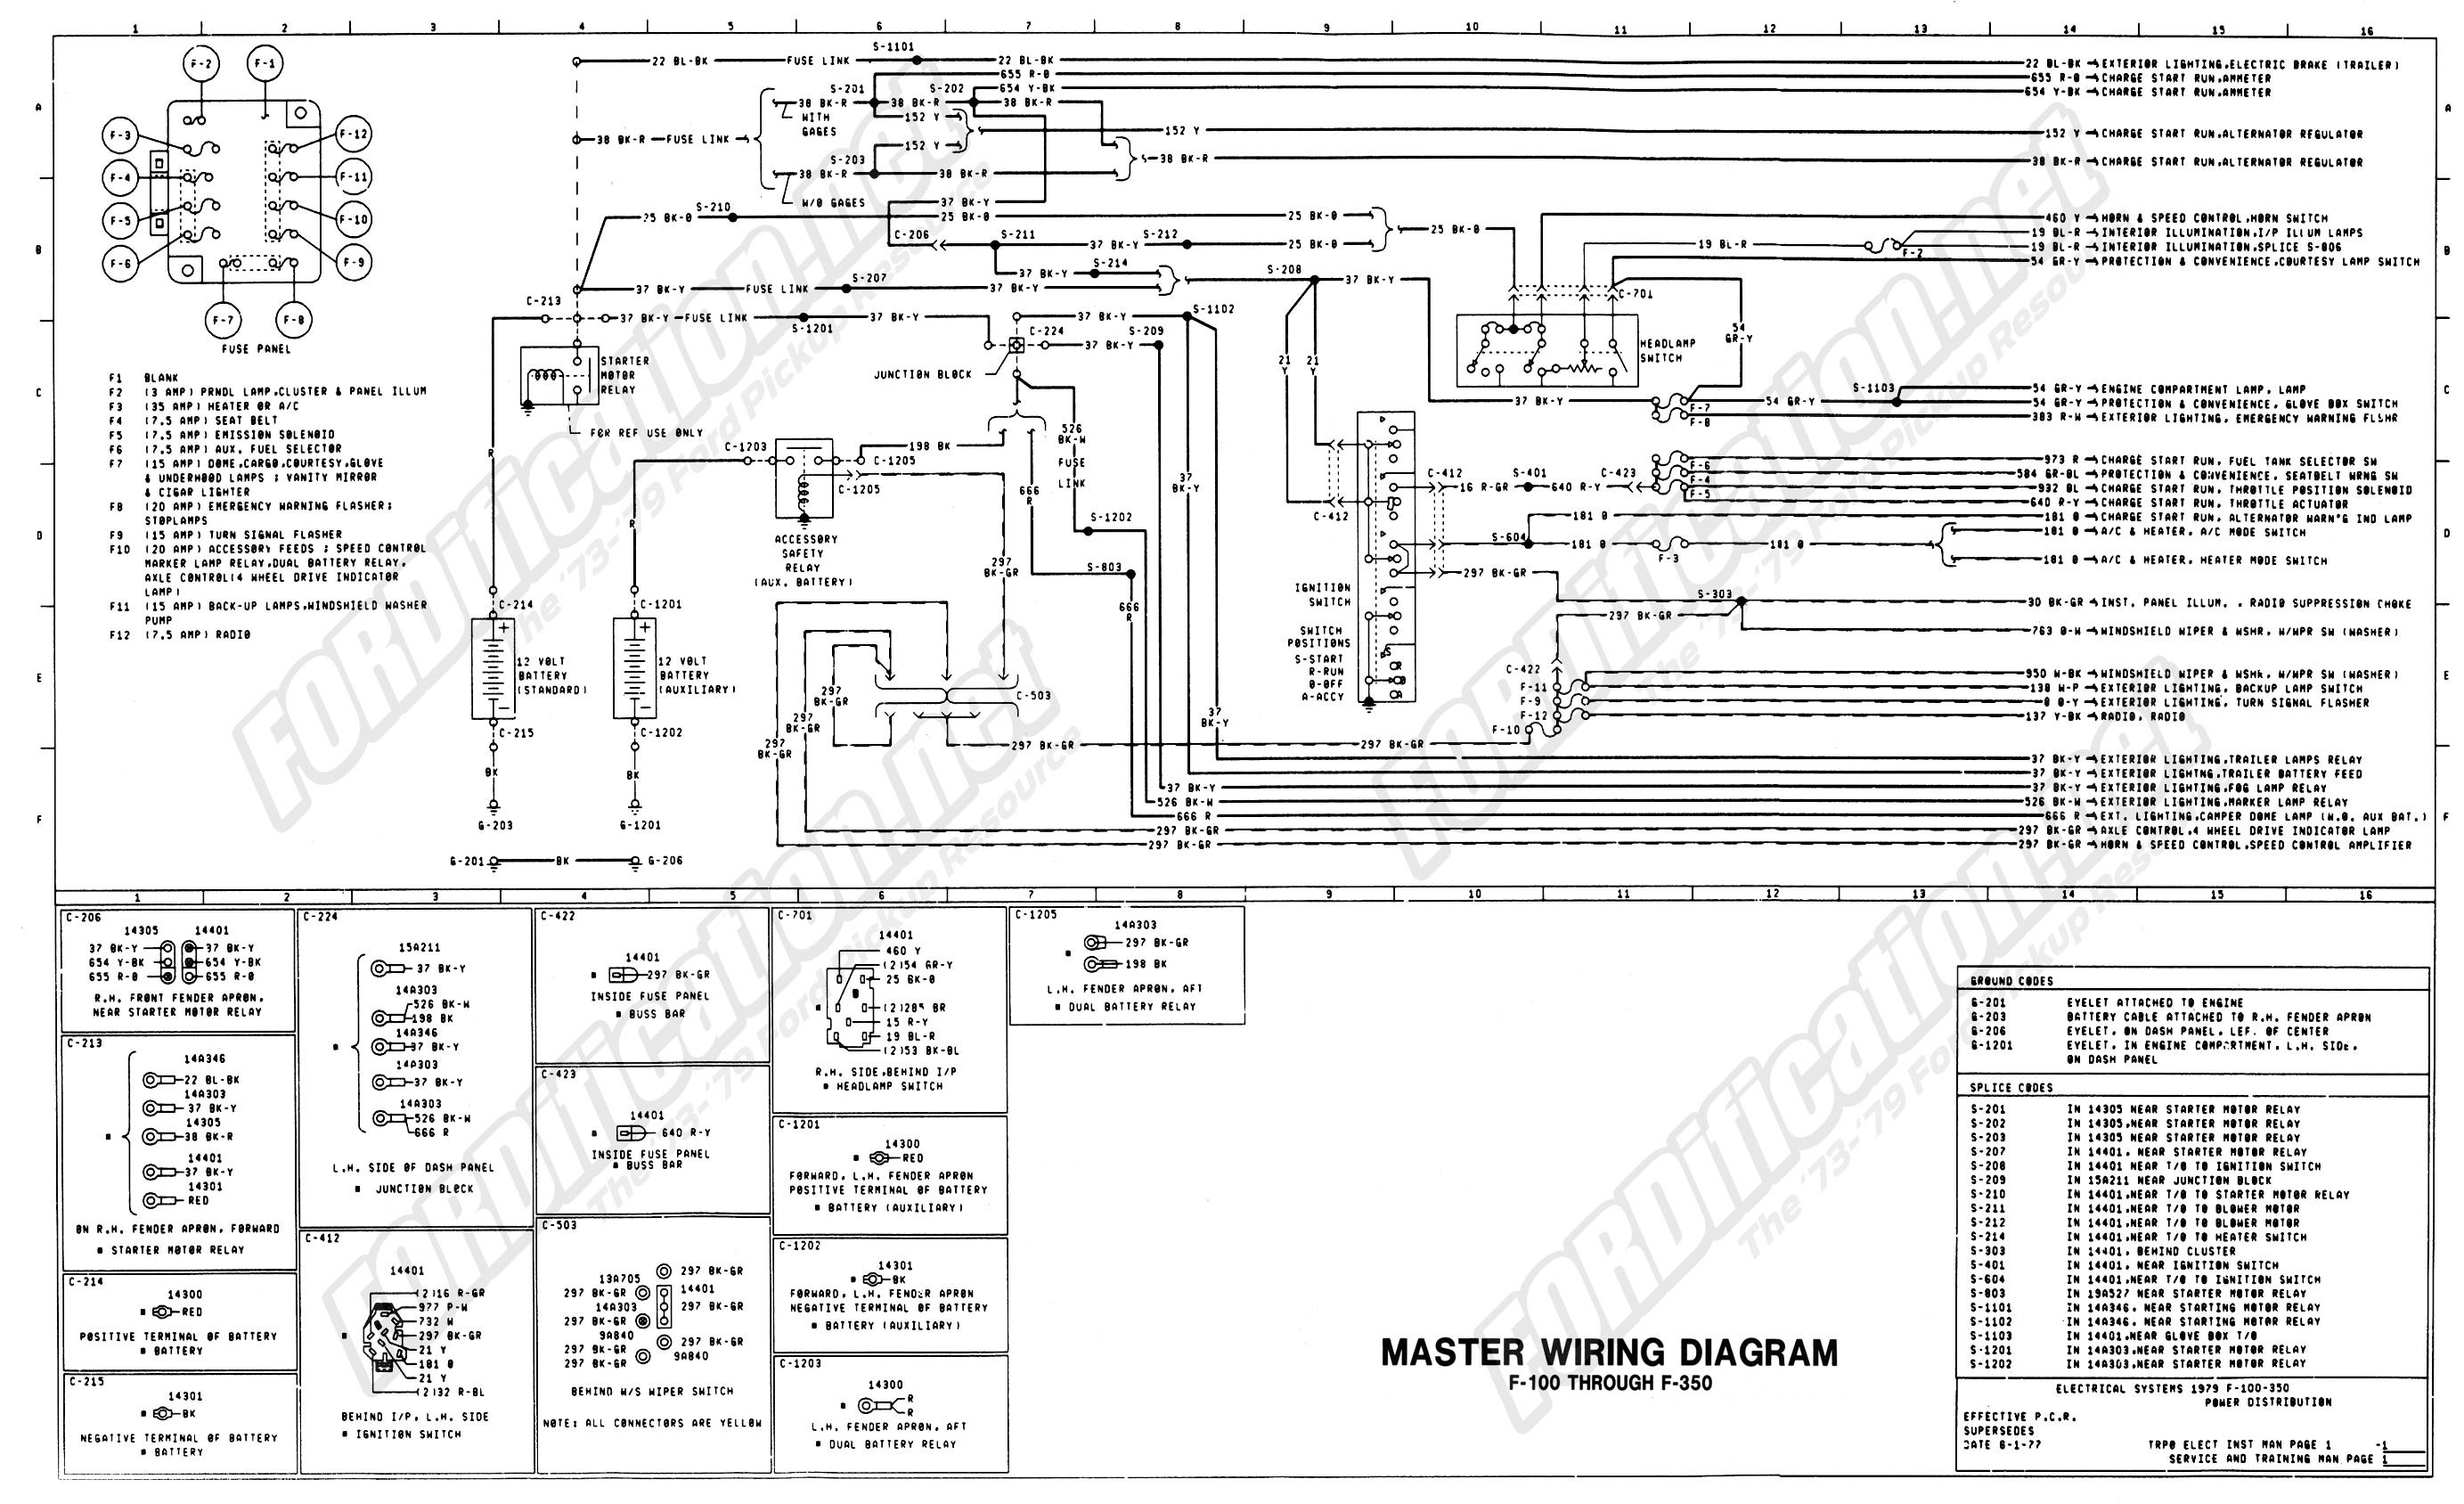 2002 F150 Engine Diagram - Fk.ogewqoua.slankaviktcenter.info •  Ford F Engine Diagram on 2012 ford mustang engine diagram, 1998 ford f-250 engine diagram, 2003 honda civic hybrid engine diagram, 2003 lincoln town car engine diagram, 2009 ford ranger engine diagram, 2002 ford explorer sport trac engine diagram, 2008 ford f-150 engine diagram, 2003 gmc yukon engine diagram, f150 4.6 engine diagram, 2002 ford f-250 engine diagram, ford 5.4 engine diagram, 2011 ford edge engine diagram, 1999 ford crown victoria engine diagram, 2011 ford taurus engine diagram, 2003 chevrolet trailblazer engine diagram, 2008 ford ranger engine diagram, 1997 ford f-250 engine diagram, 2003 subaru legacy engine diagram, 1987 ford f-150 engine diagram, 2003 chevrolet silverado 1500 engine diagram,